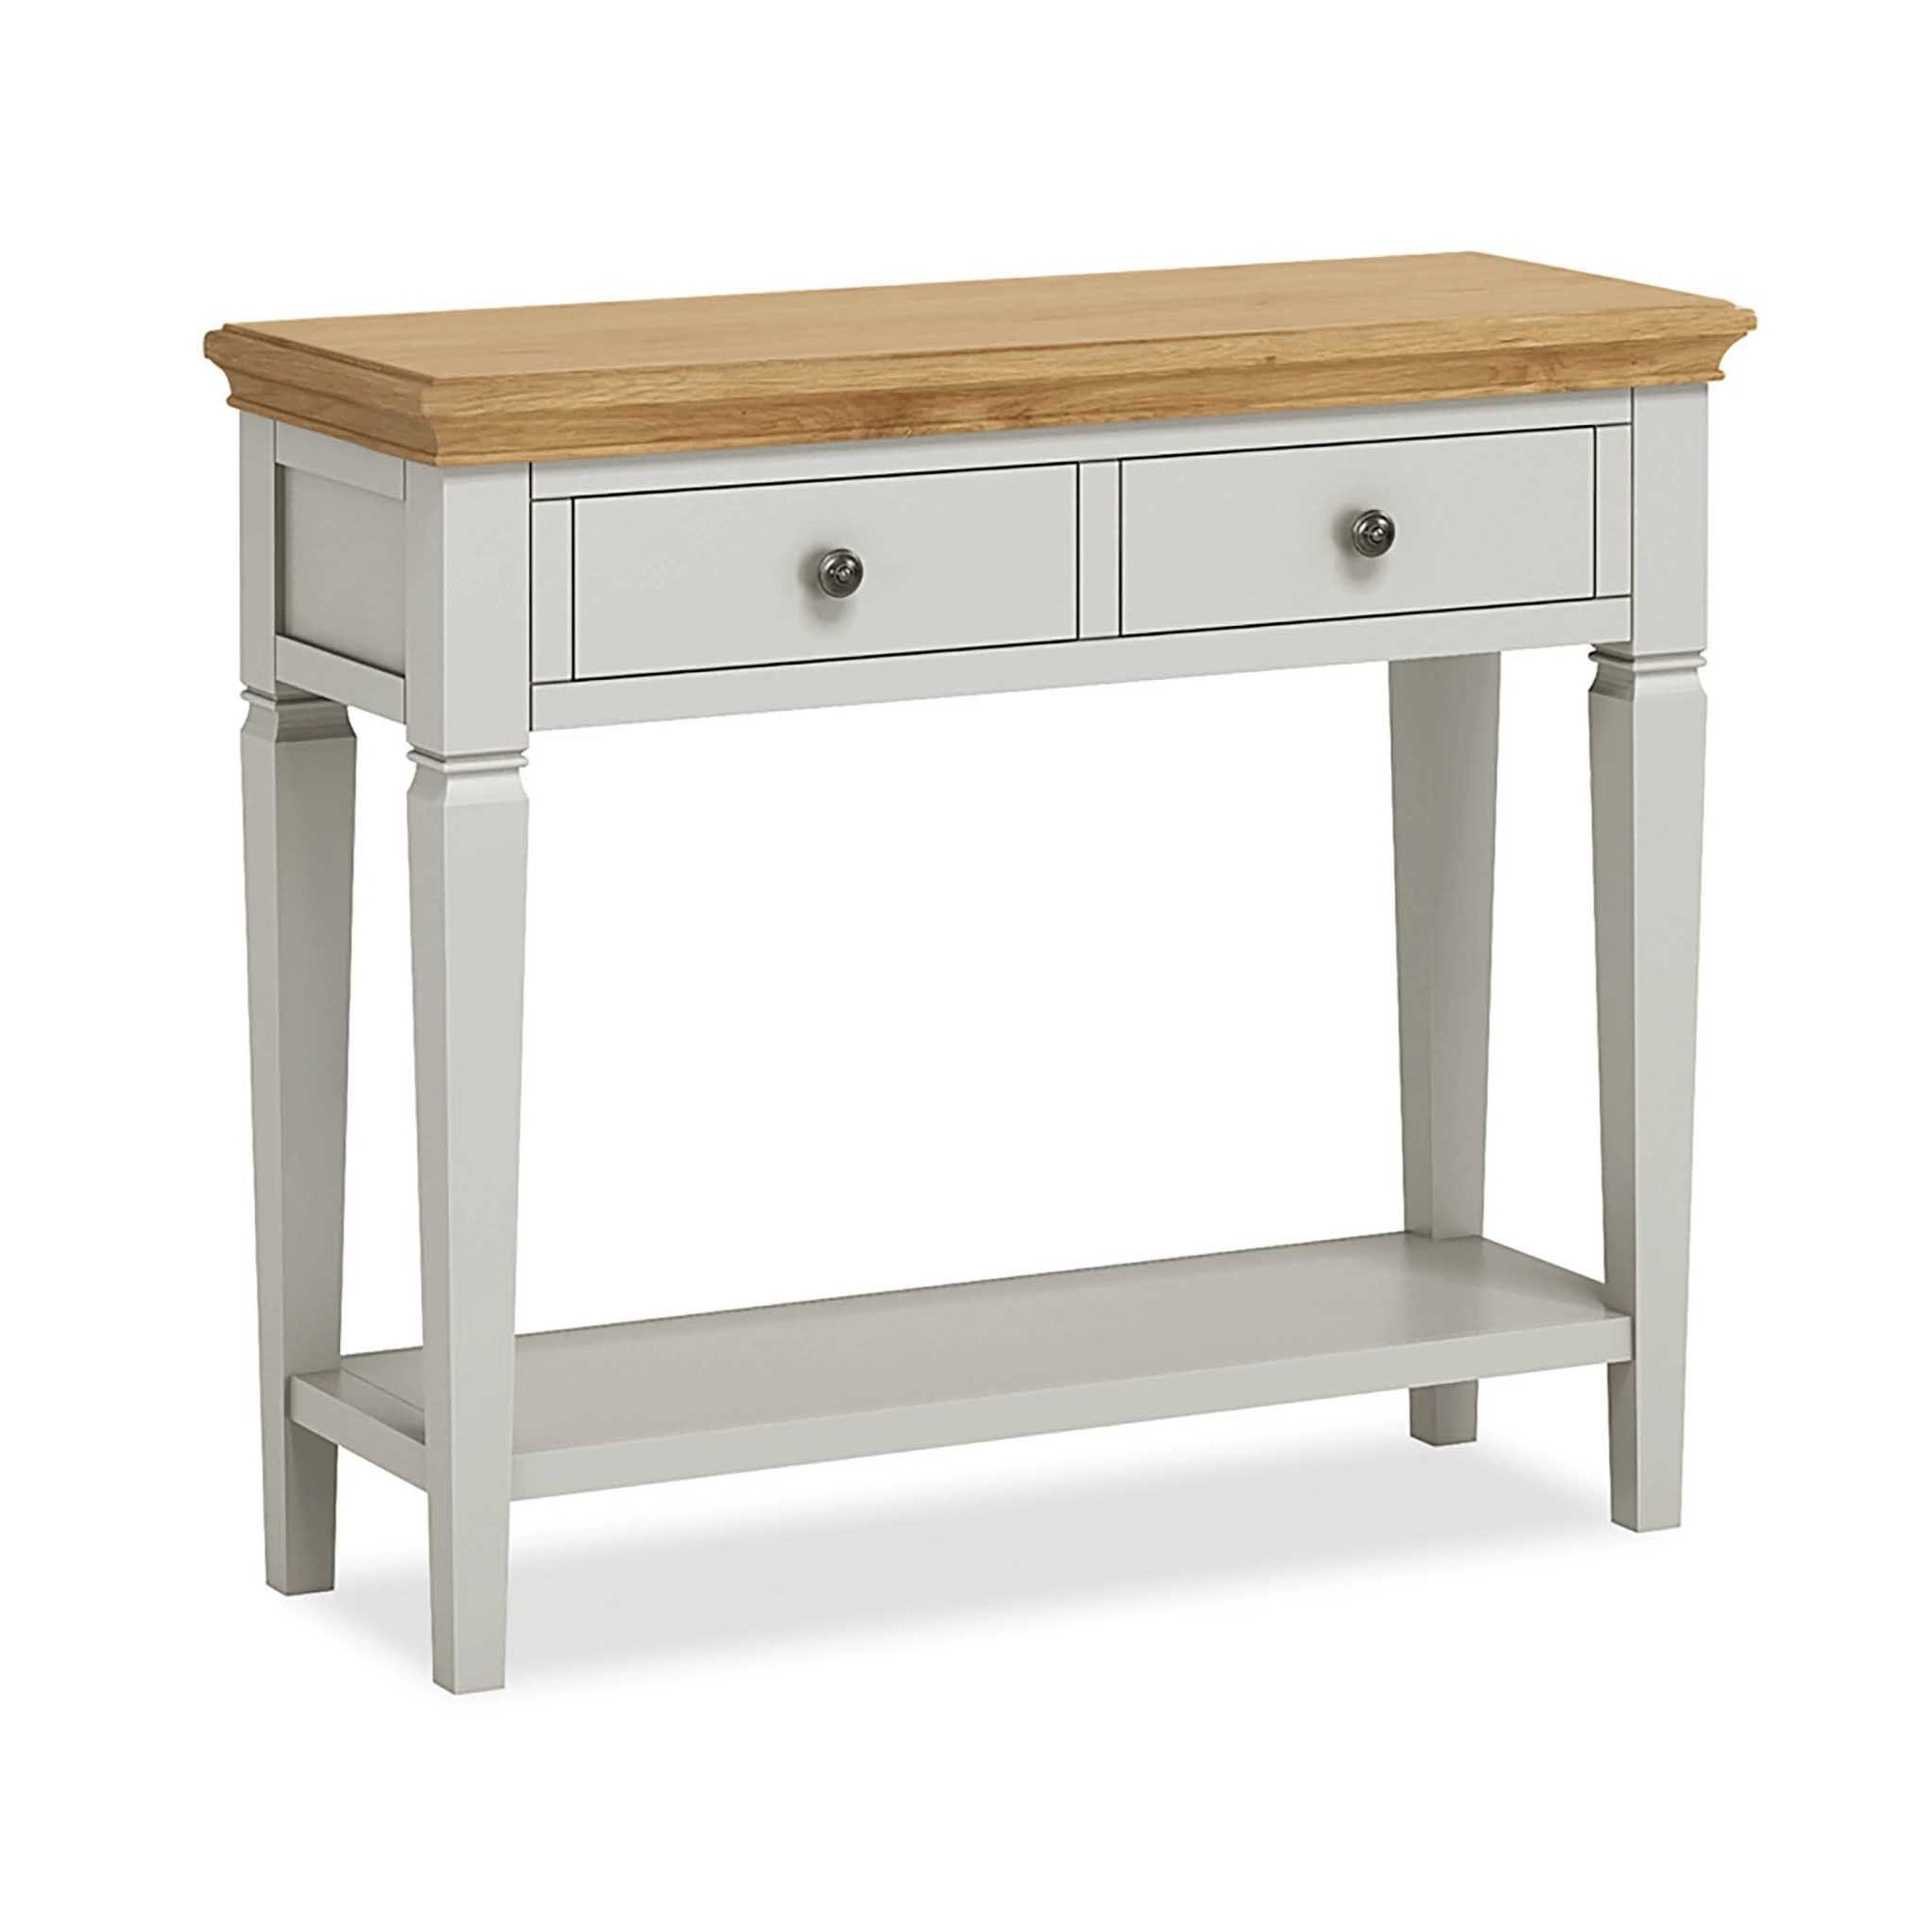 Normandy Grey Console Table by Roseland Furniture